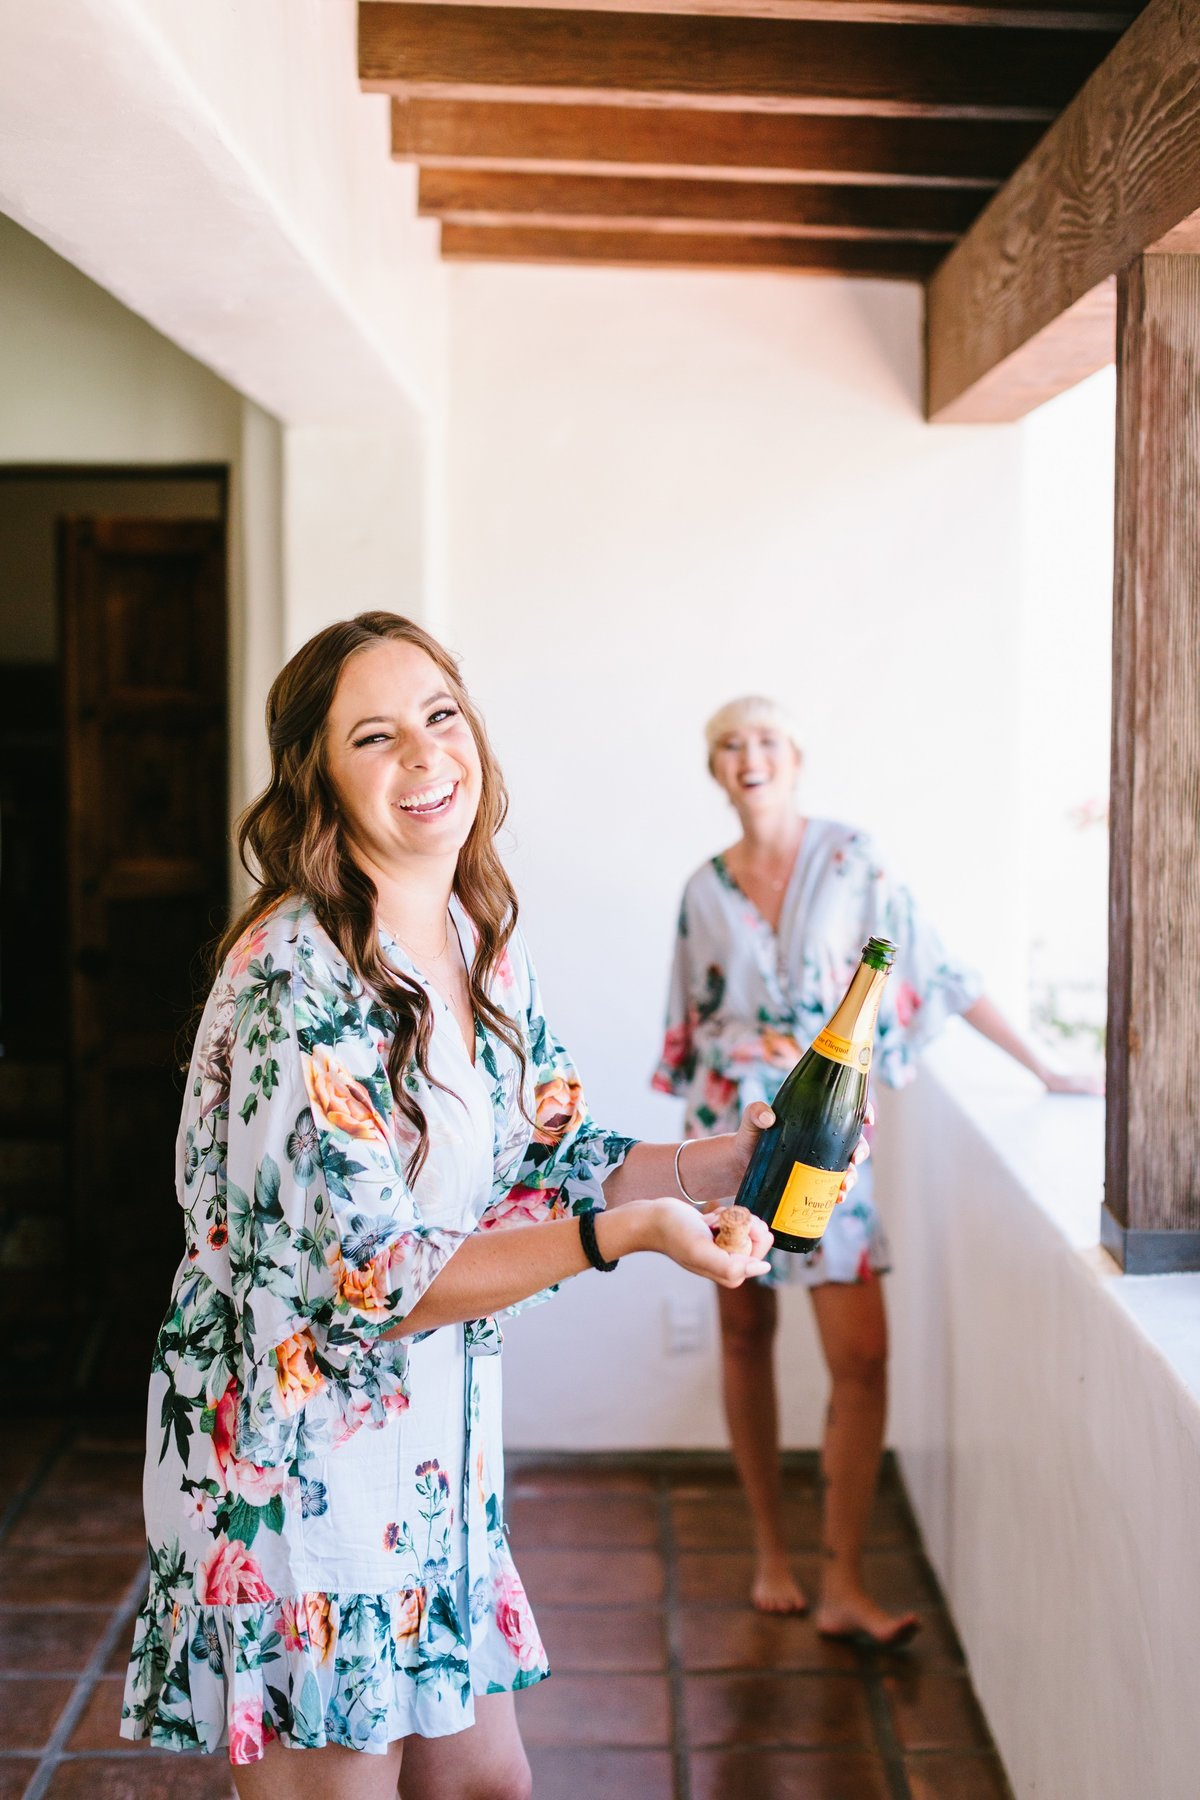 Best California Wedding Photographer-Jodee Debes Photography-188